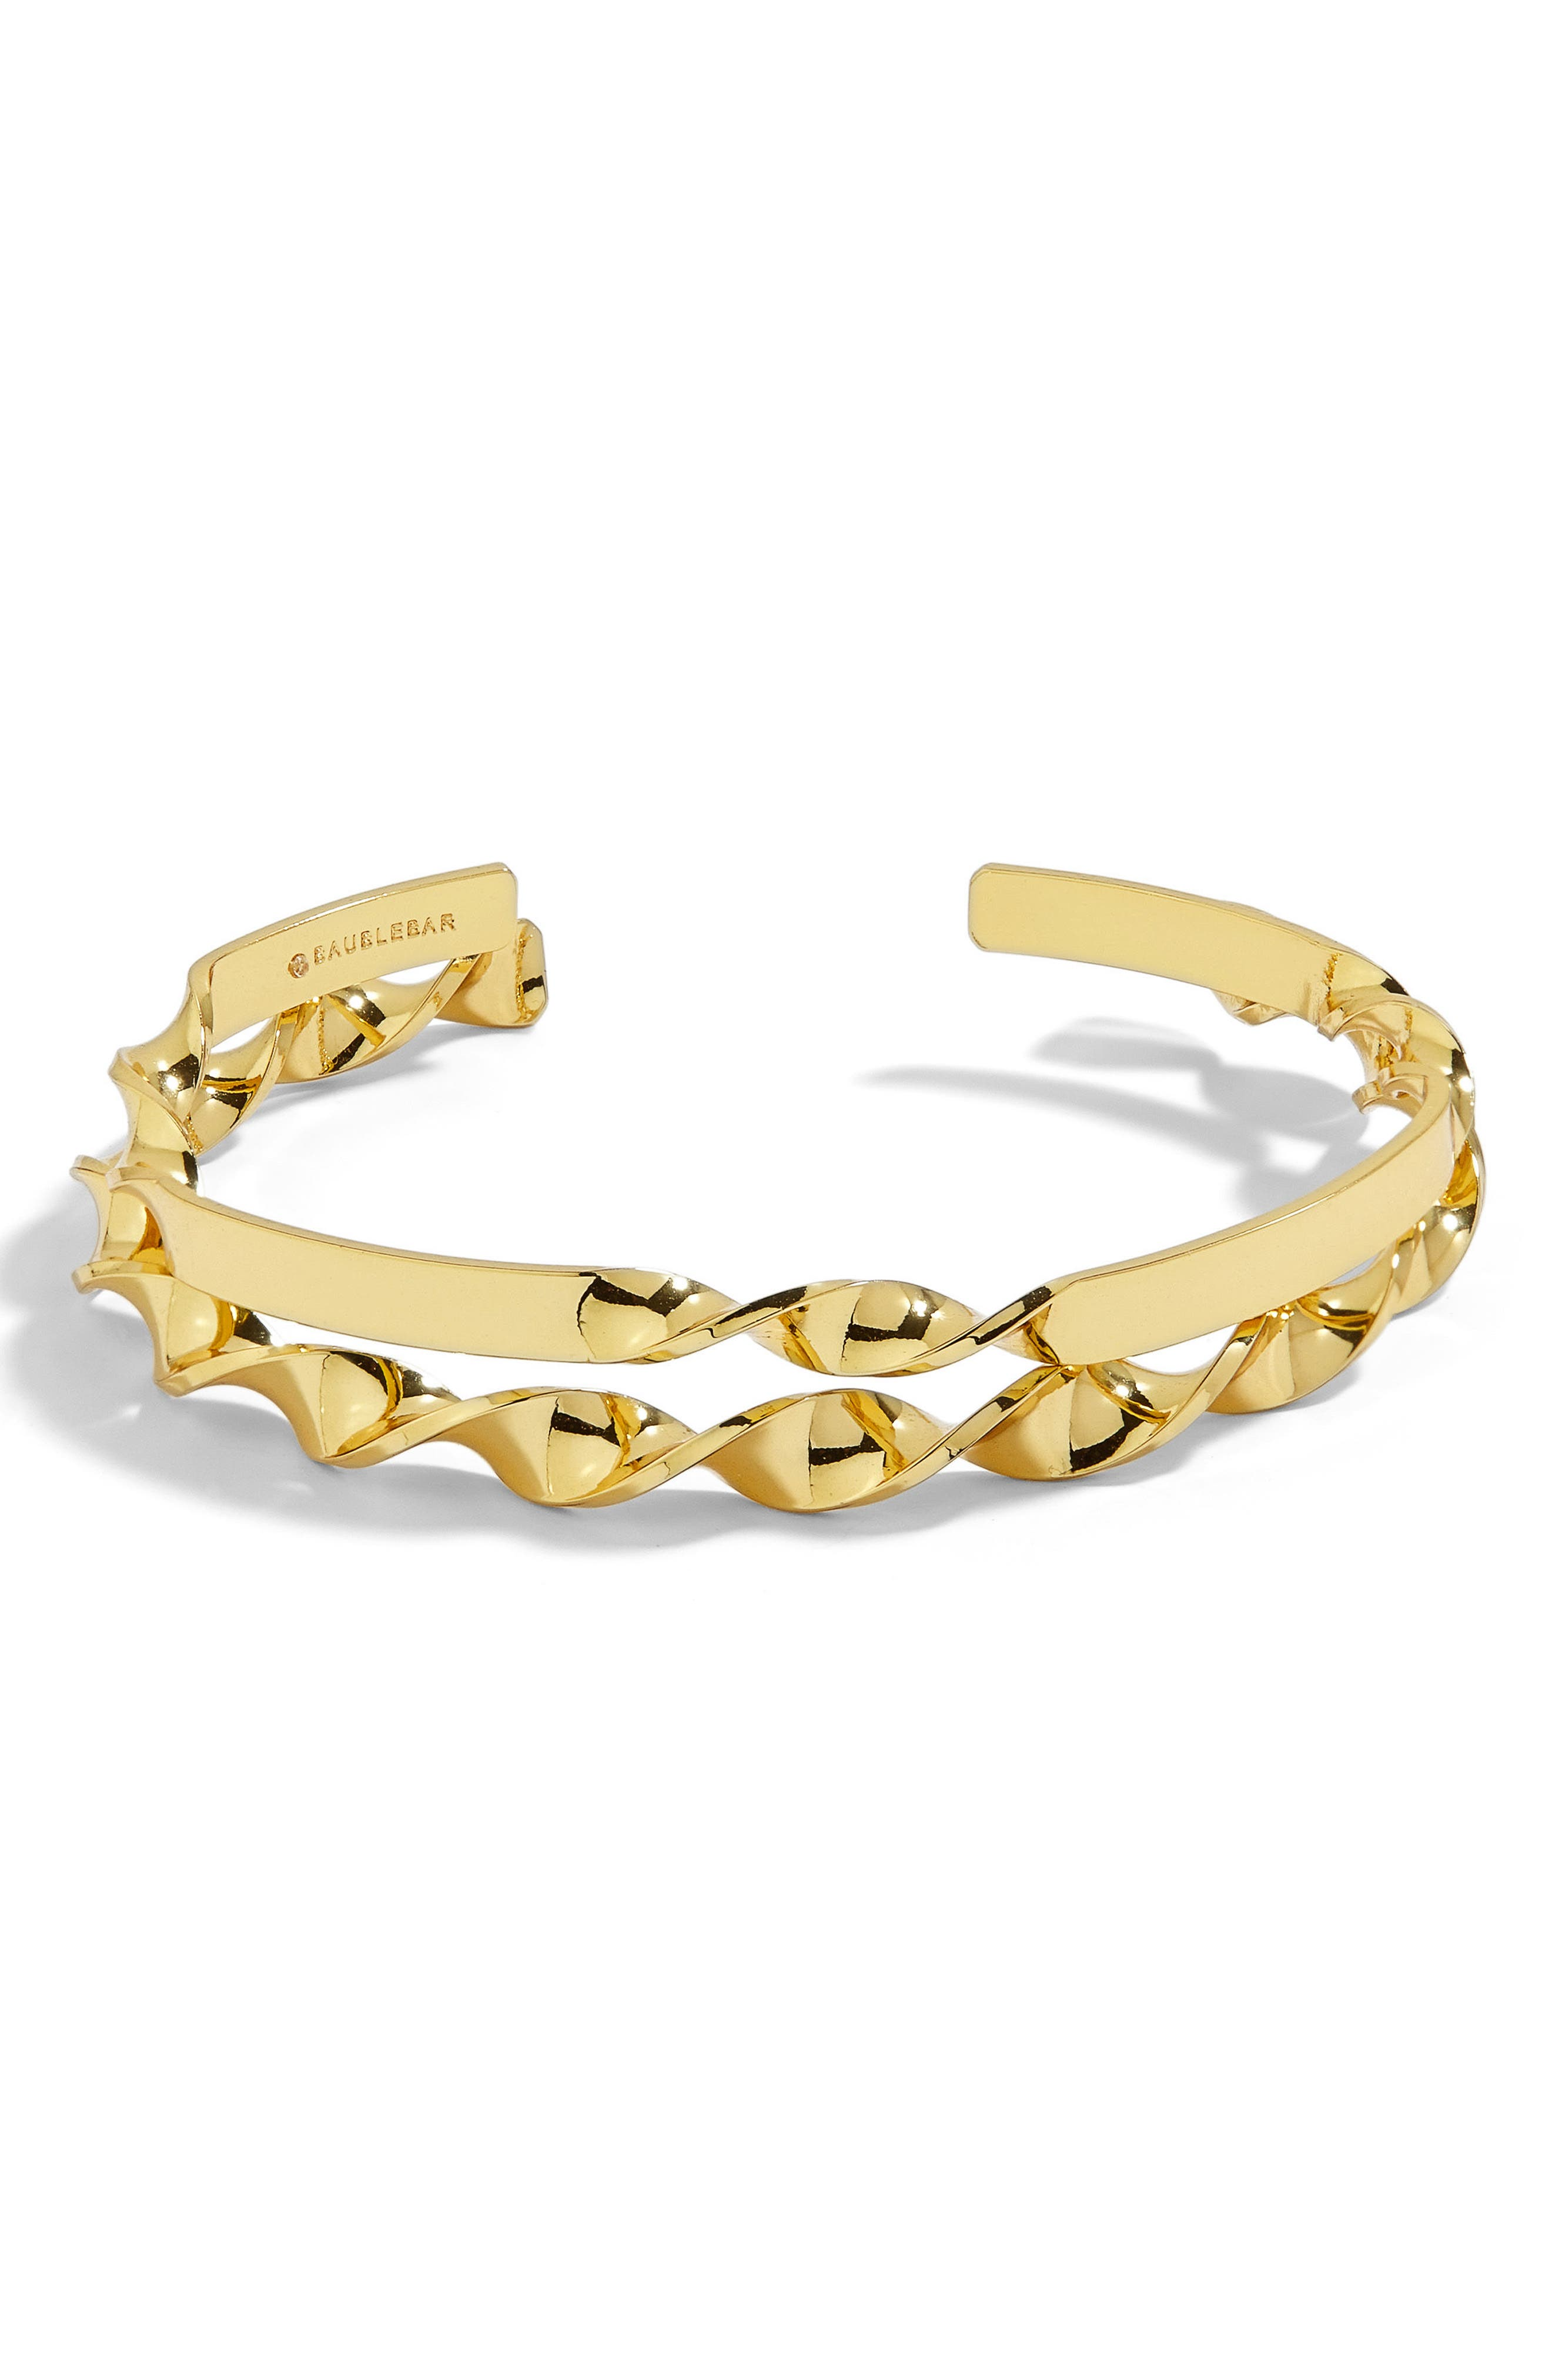 Narine Set of 2 Twisted Gold Cuff Bracelets,                             Main thumbnail 1, color,                             710